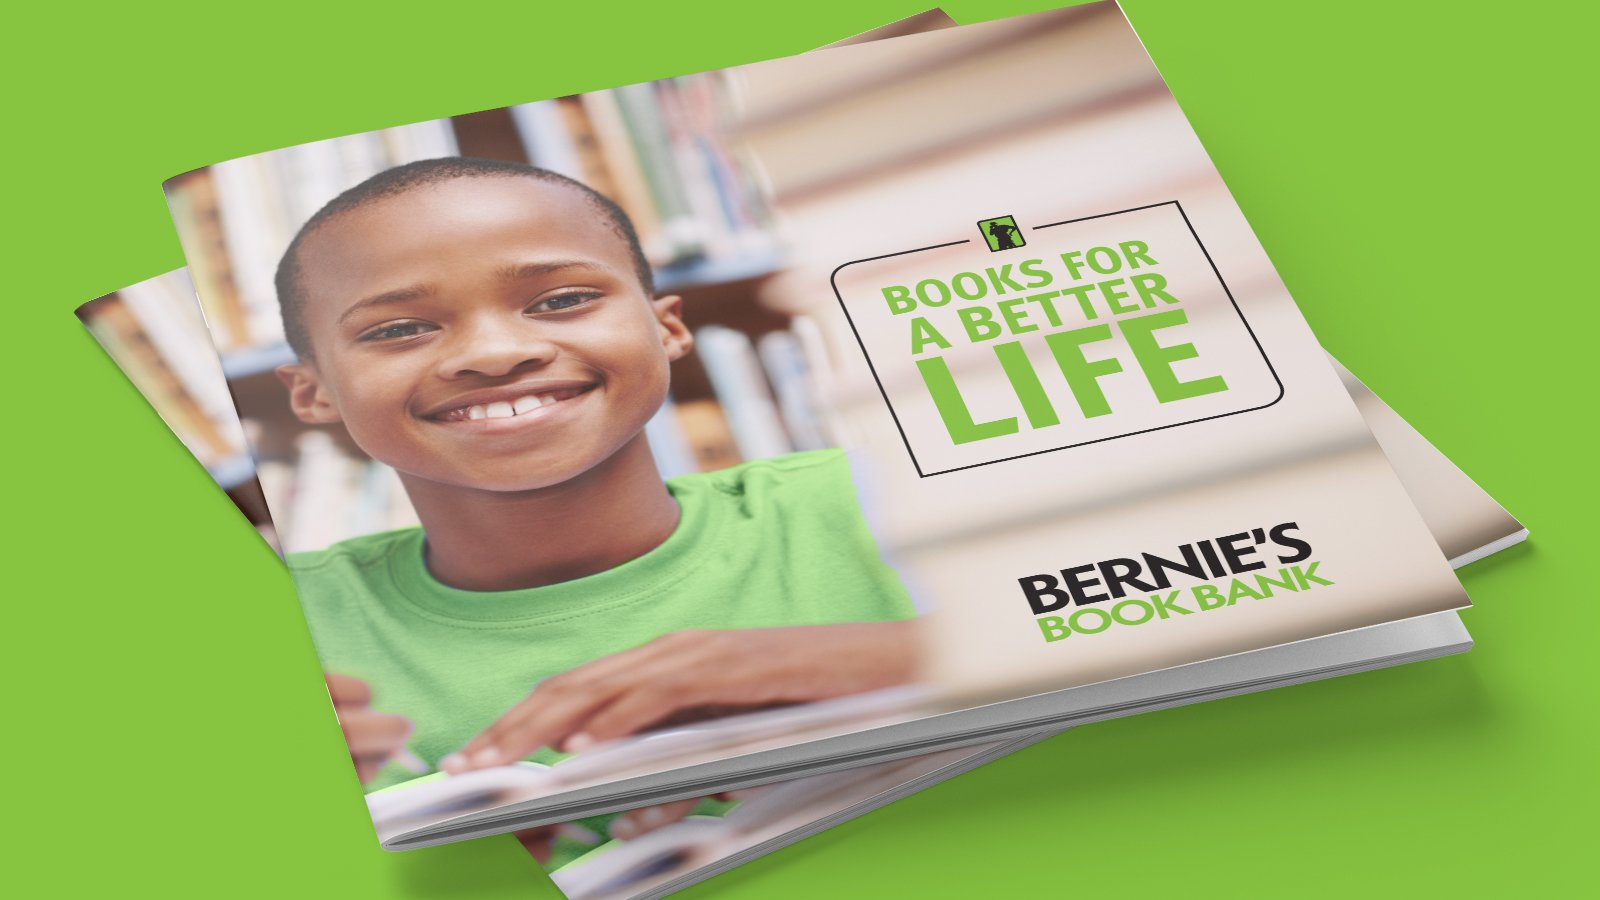 Bernie's Book Bank - Brochure Cover